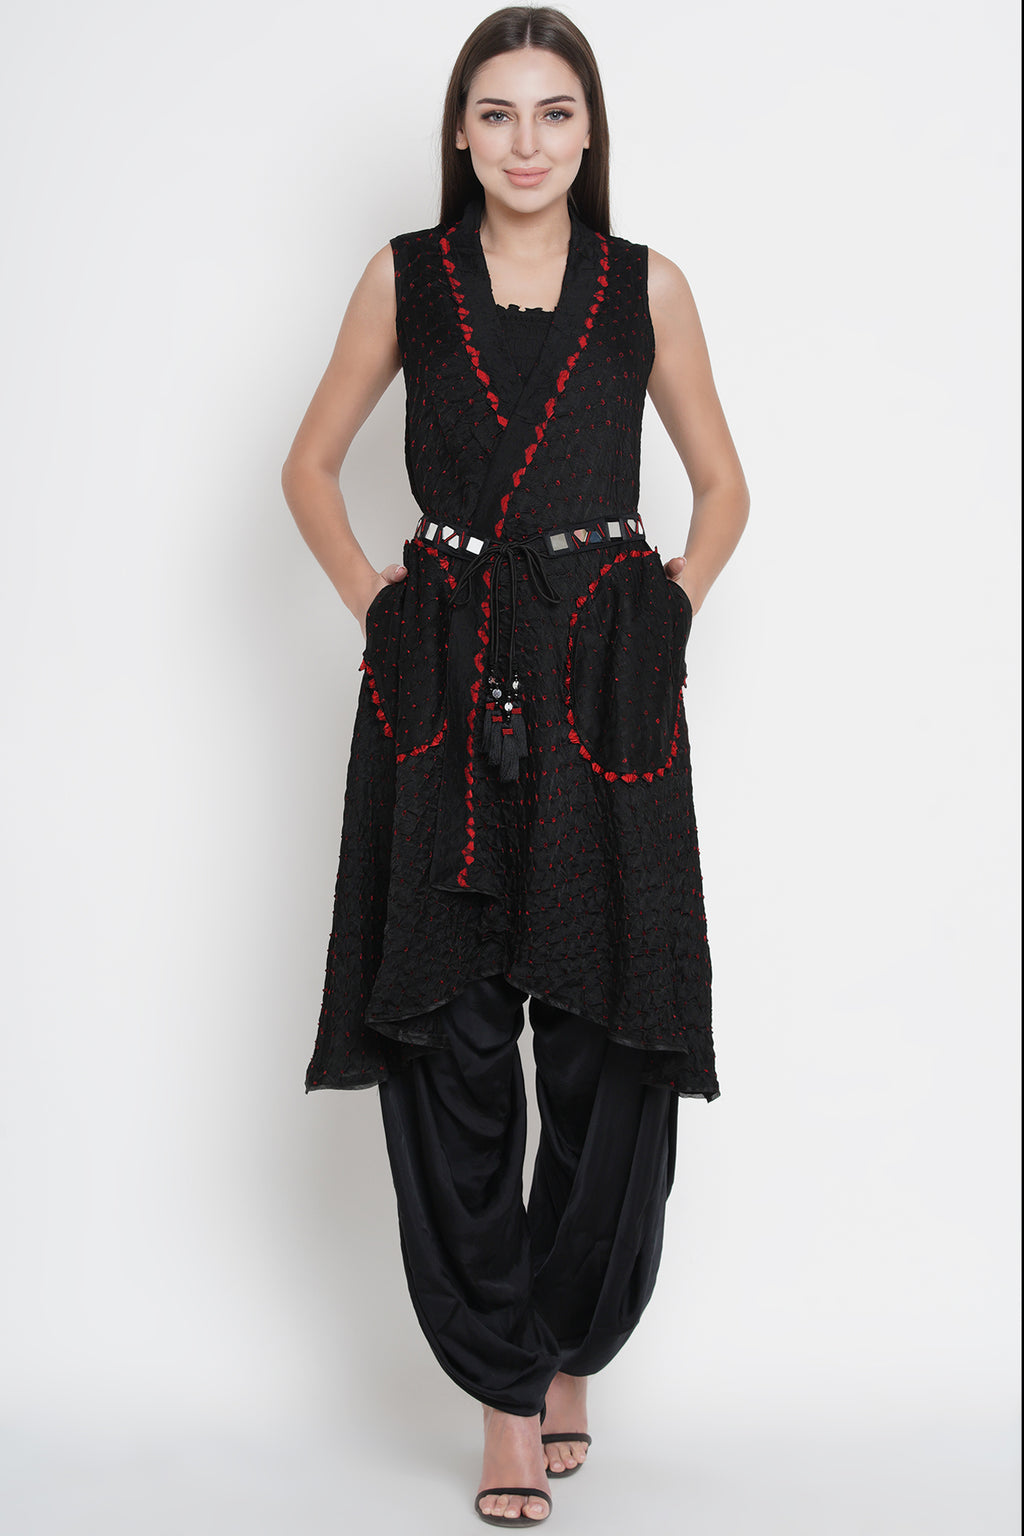 Black Gajji Silk Bandhani Asym Cape Jacket